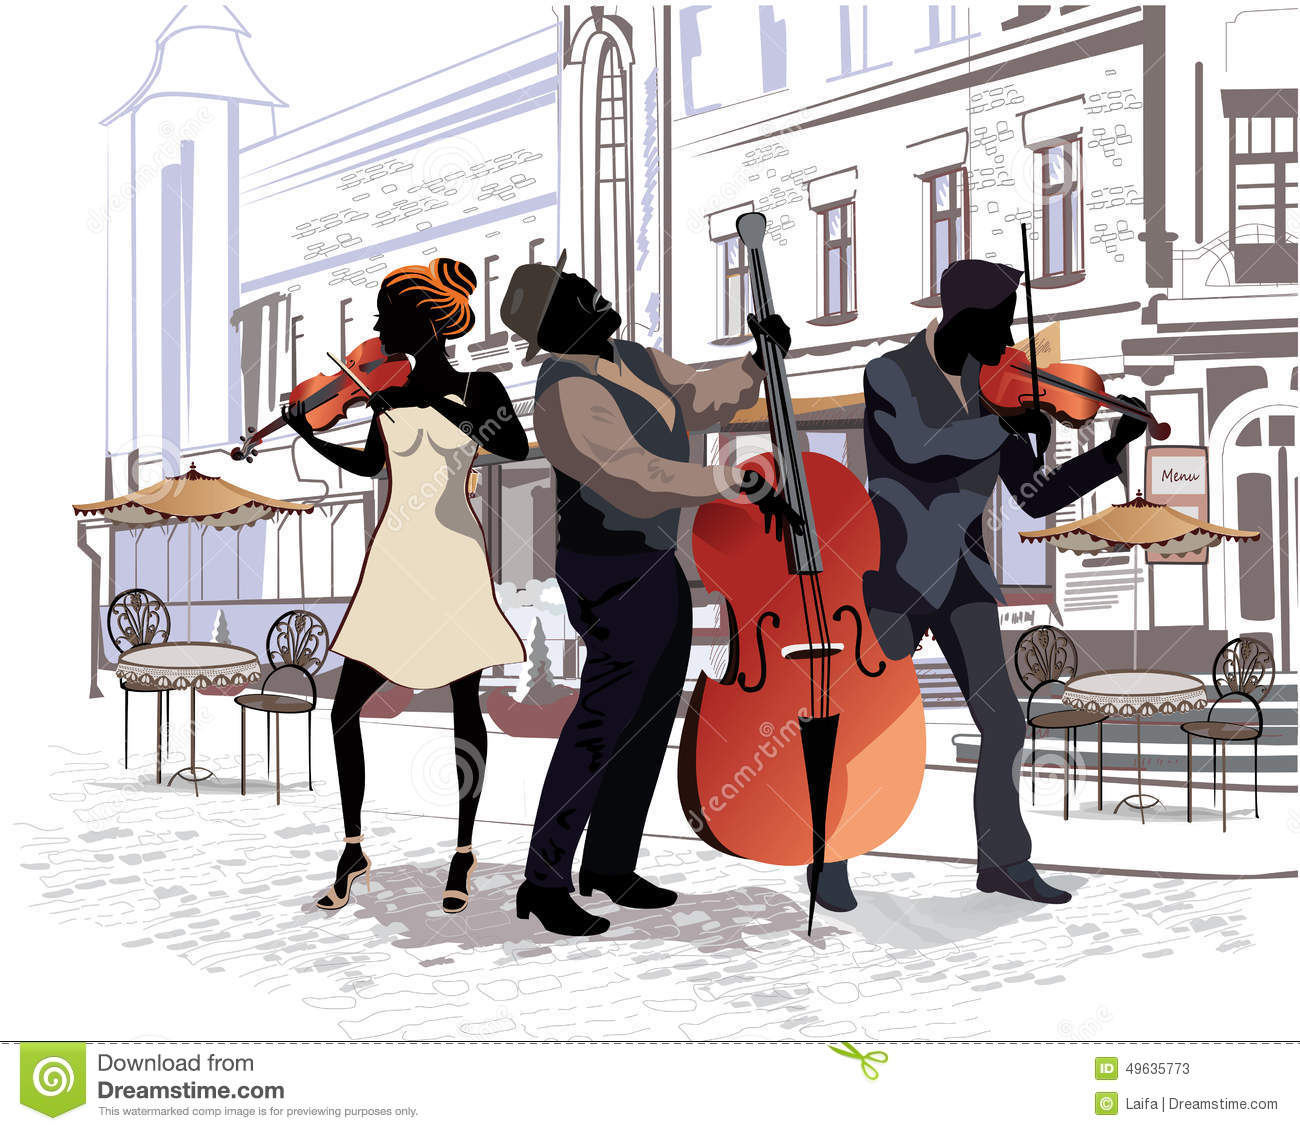 Series of the streets with people in the old city. Musicians